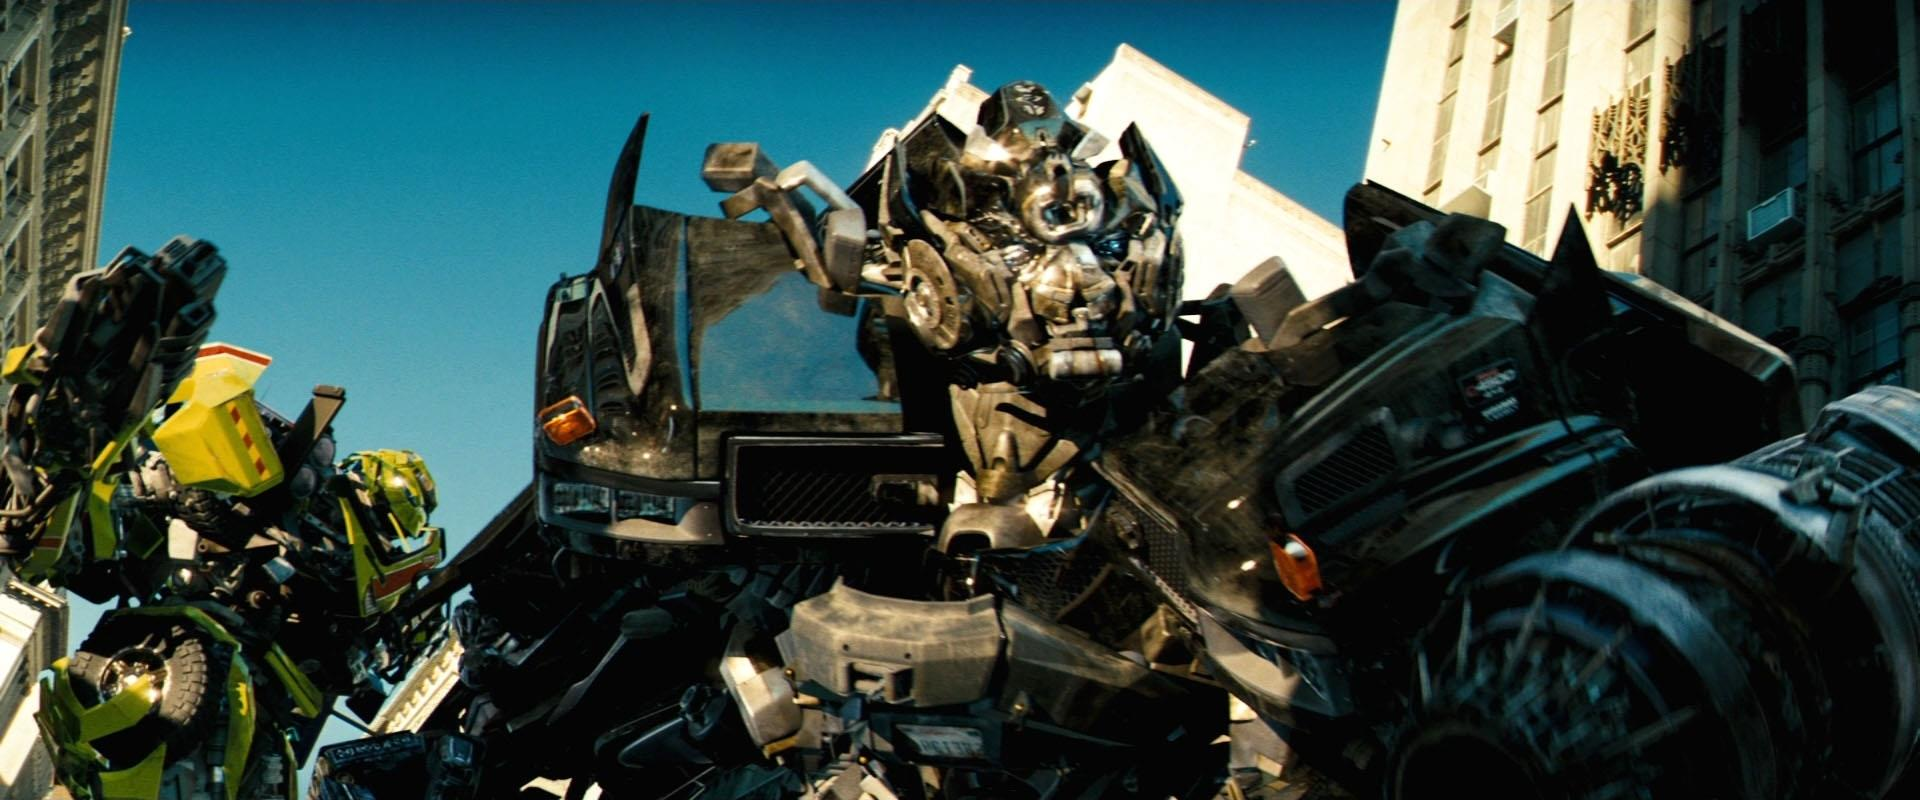 """evaluation of the movie transformers """"transformers: dark of the moon"""" is among michael bay's best movies and by far the best 3-d sequel ever made about gigantic toys from outer space."""